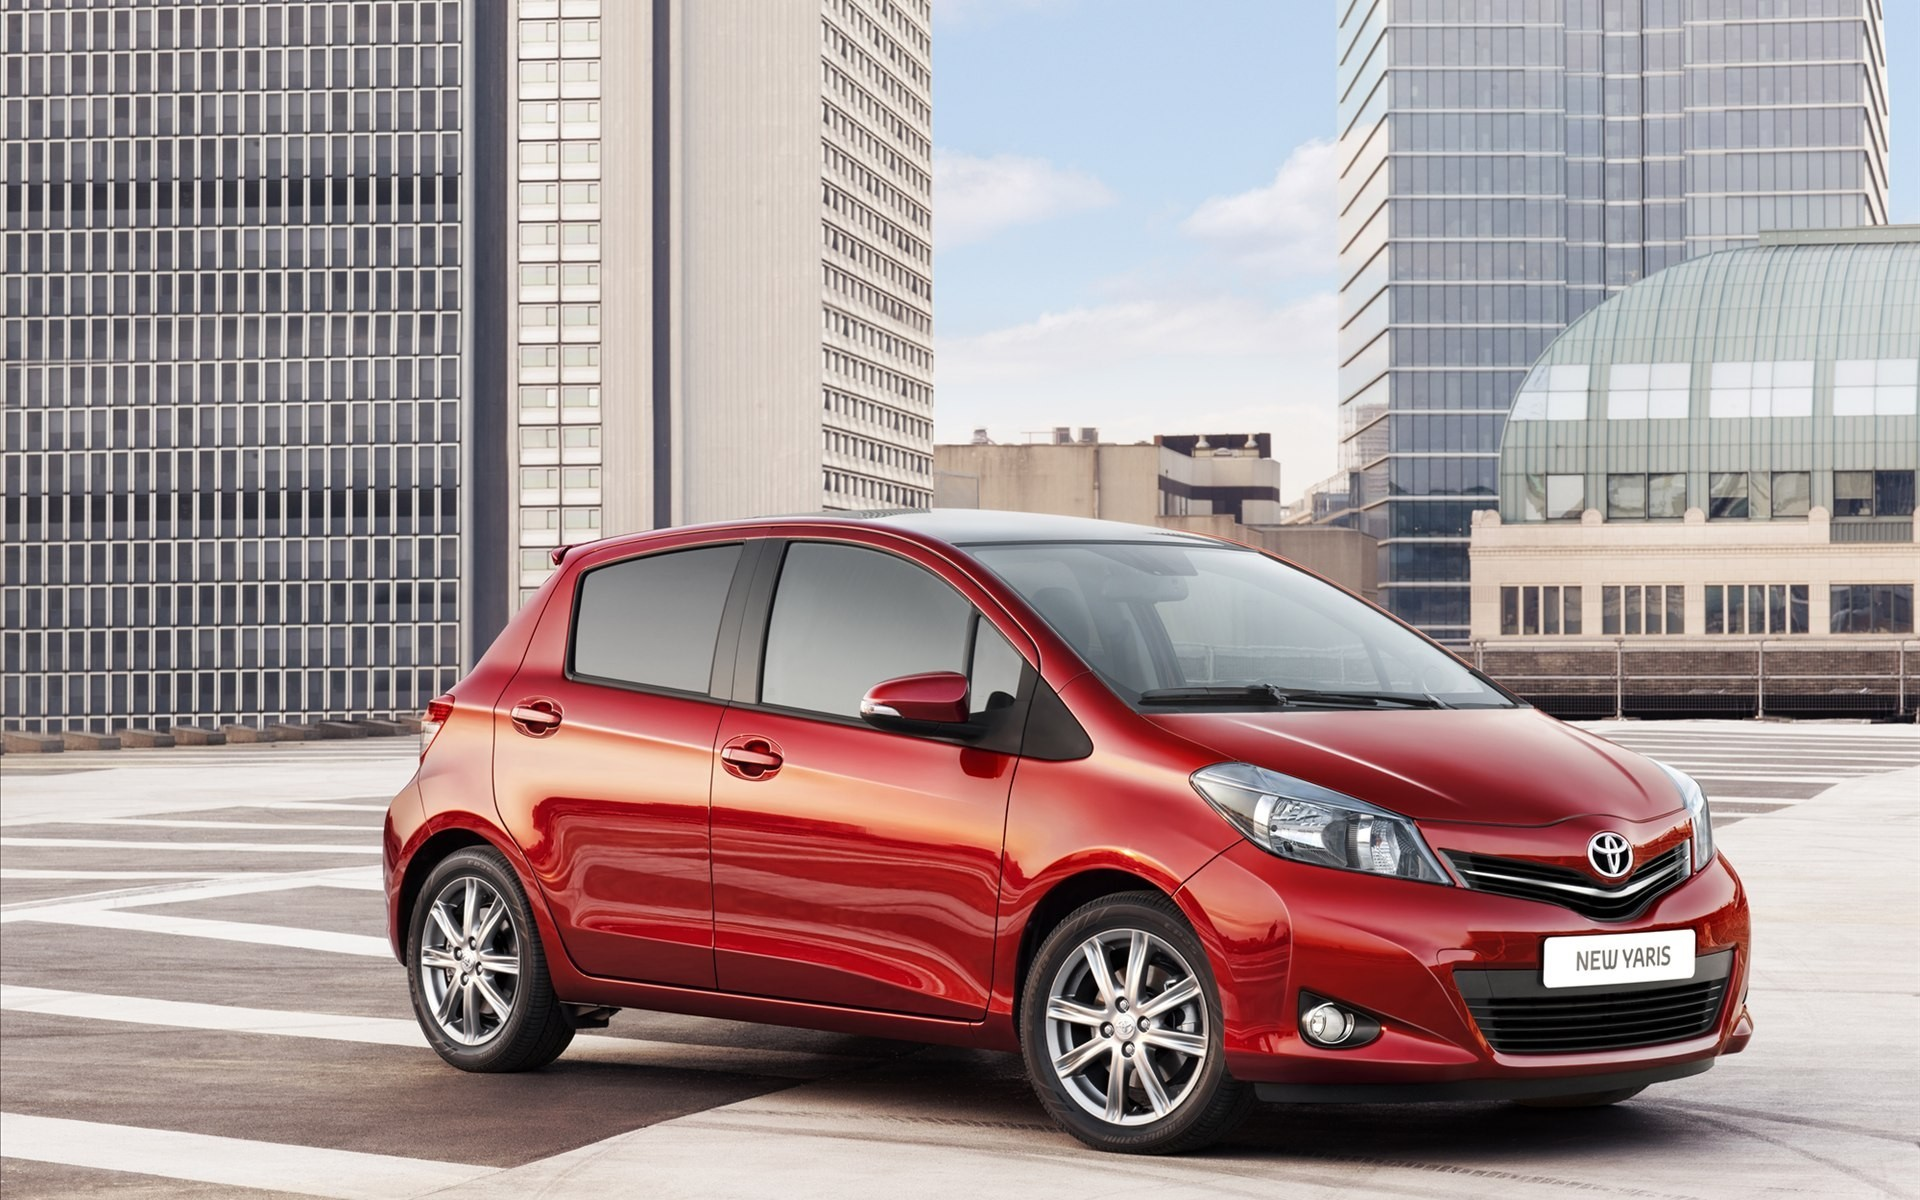 cars Toyota Toyota Yaris HD Wallpaper